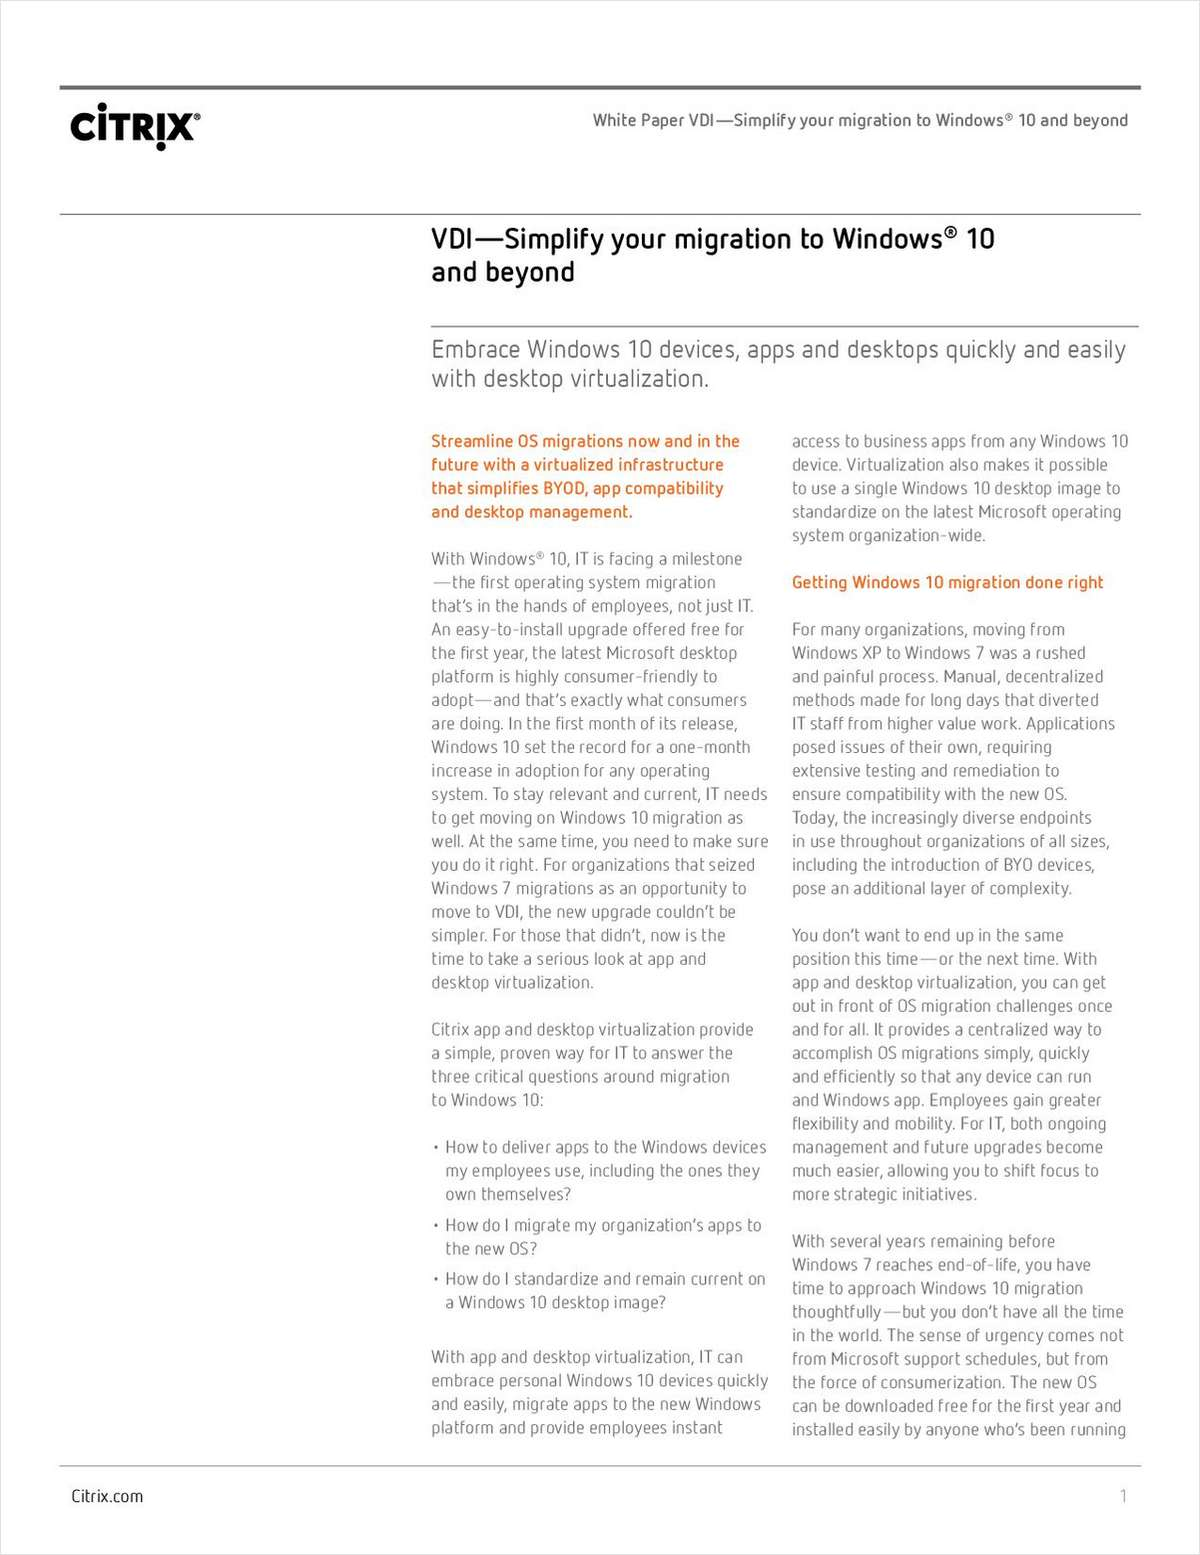 Simplify your Migration to Windows® 10 and Beyond